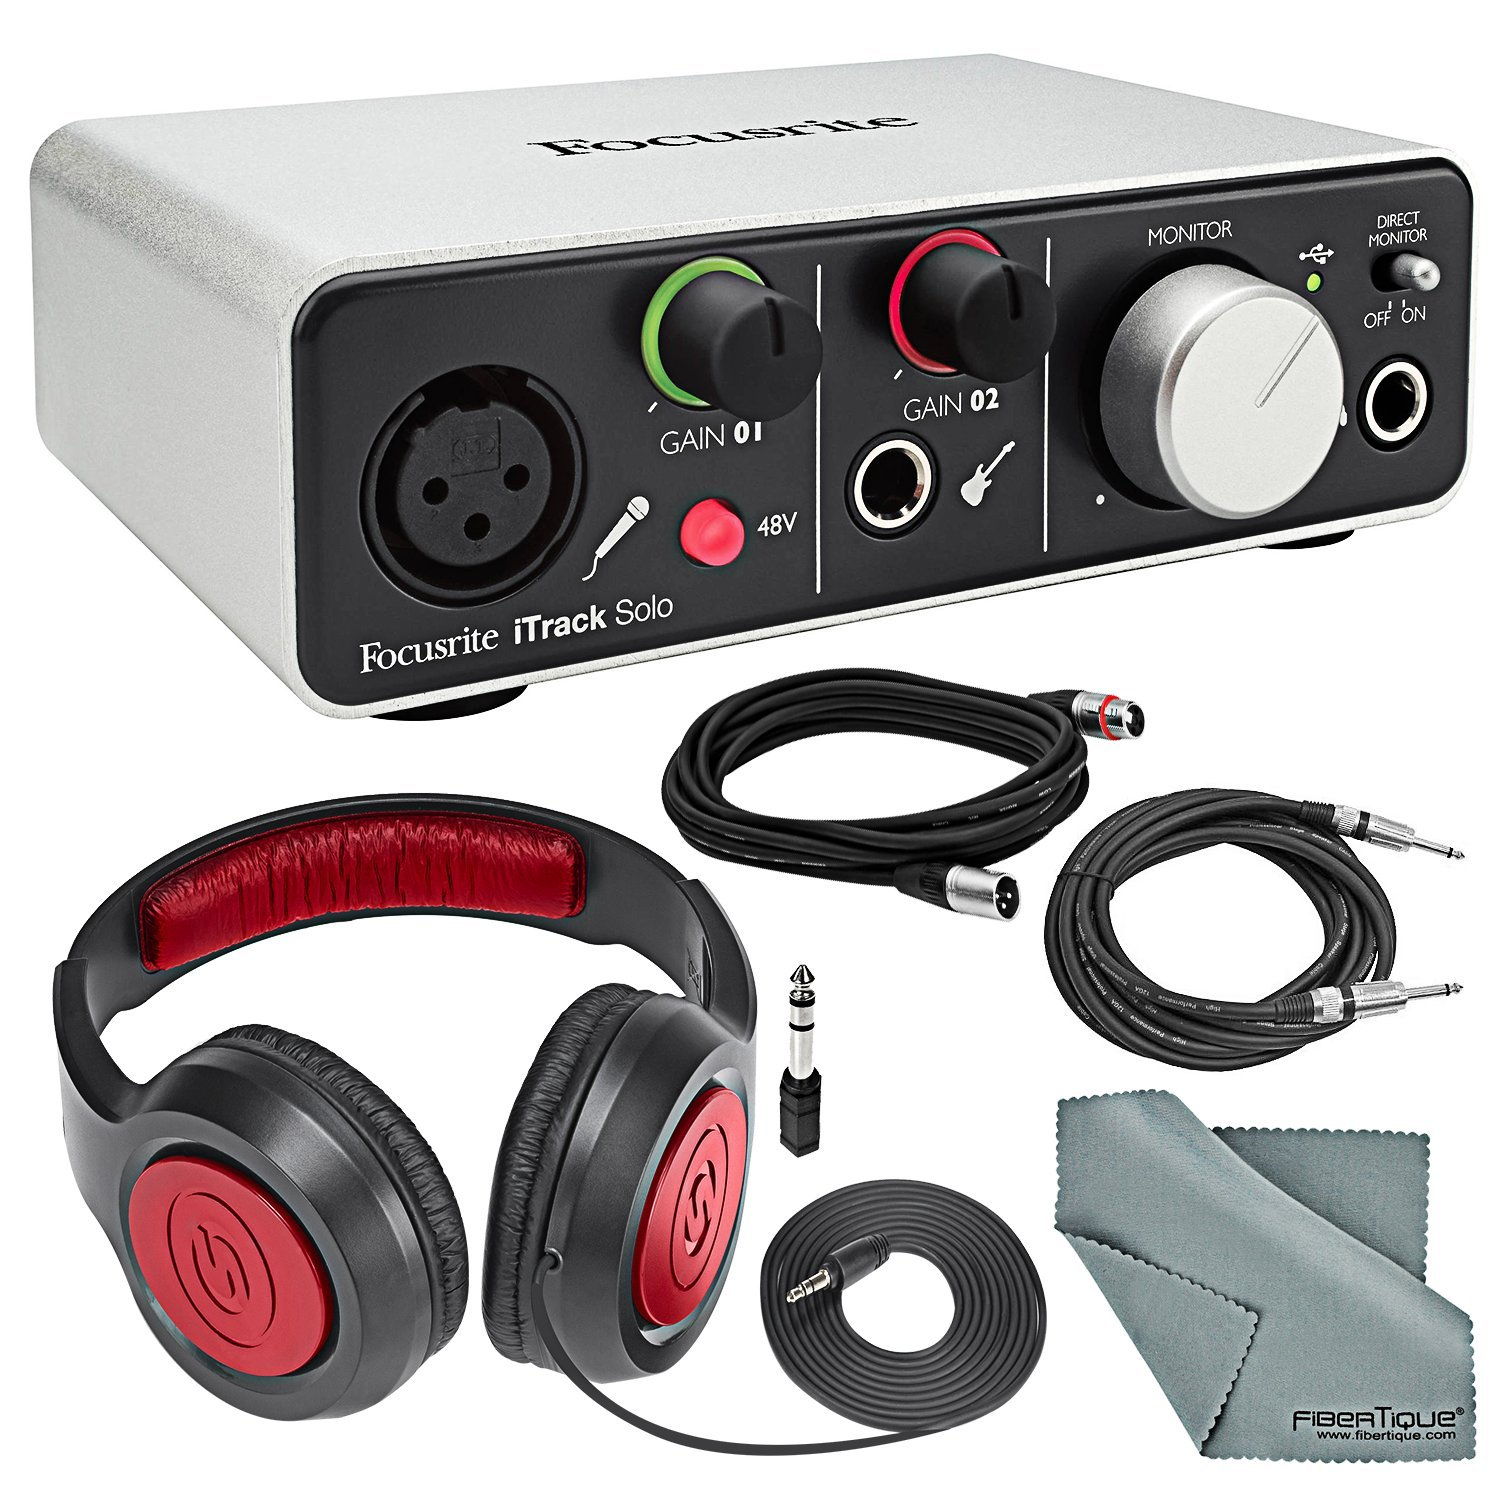 Focusrite iTrack Solo (Lightning) - USB 2.0 Audio Interface Bundle W/ XLR Cable +1/4 Inch Cable + Samson Headphones + FiberTique Cleaning cloth Focusrite / Photo Savings 4341090055